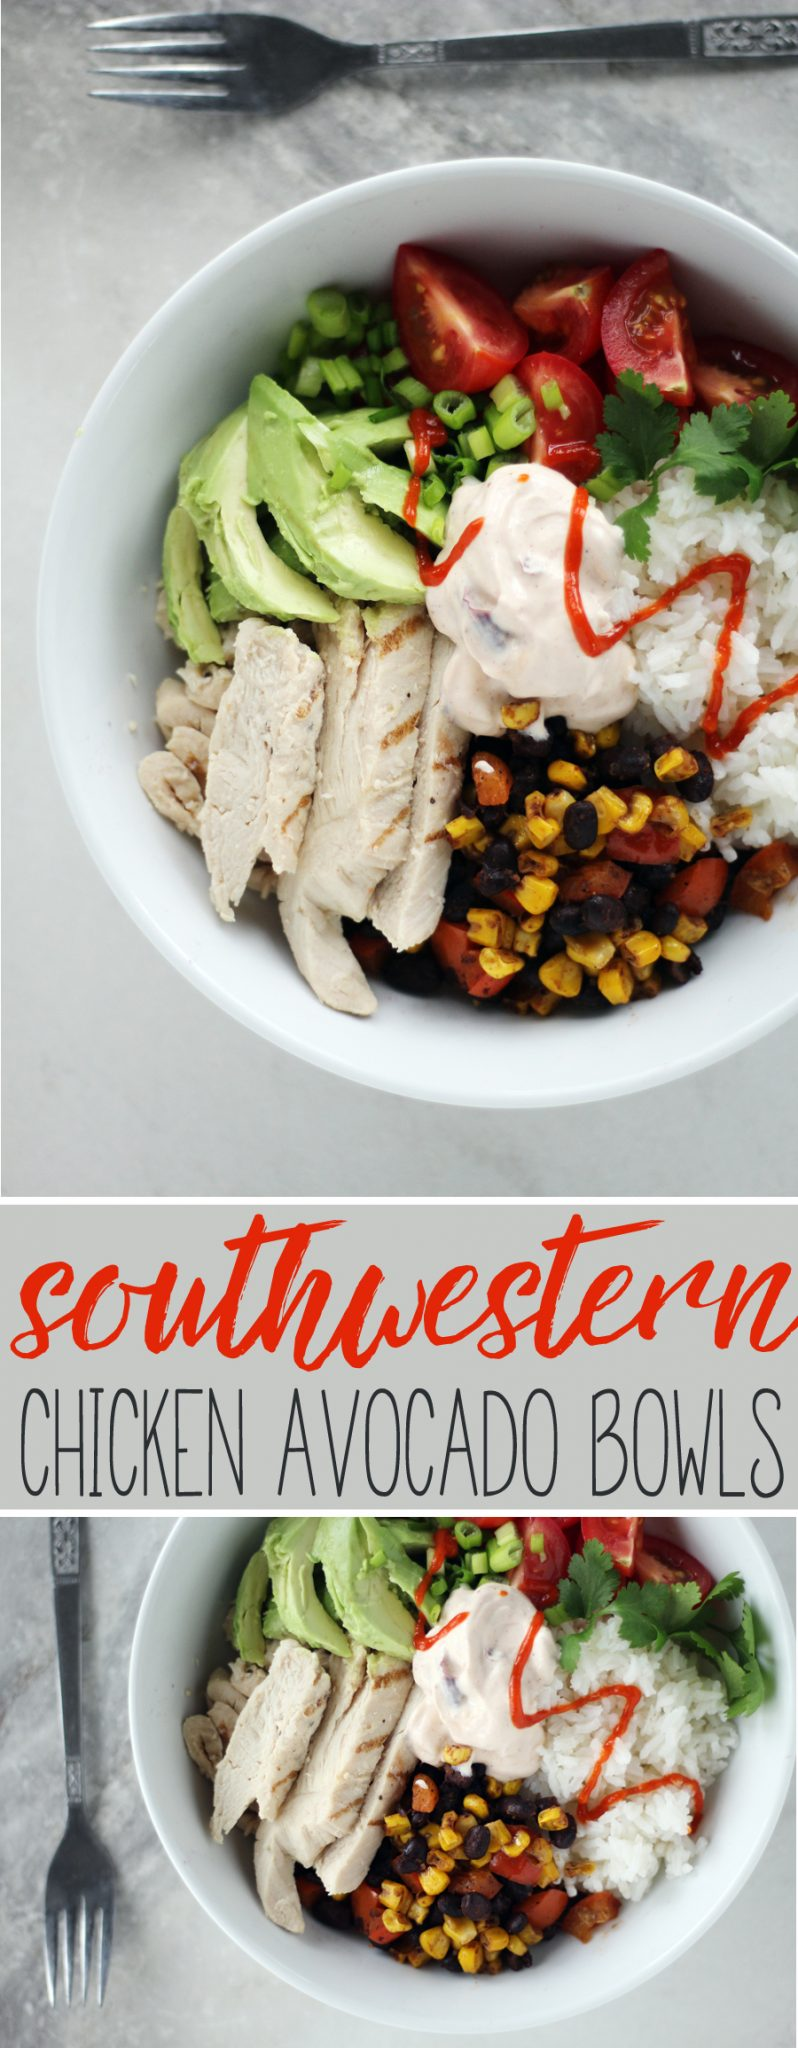 Full of flavor and easy to make, these Southwestern Chiciken Avocado Bowls make lunch time delicious. #chickenavocado